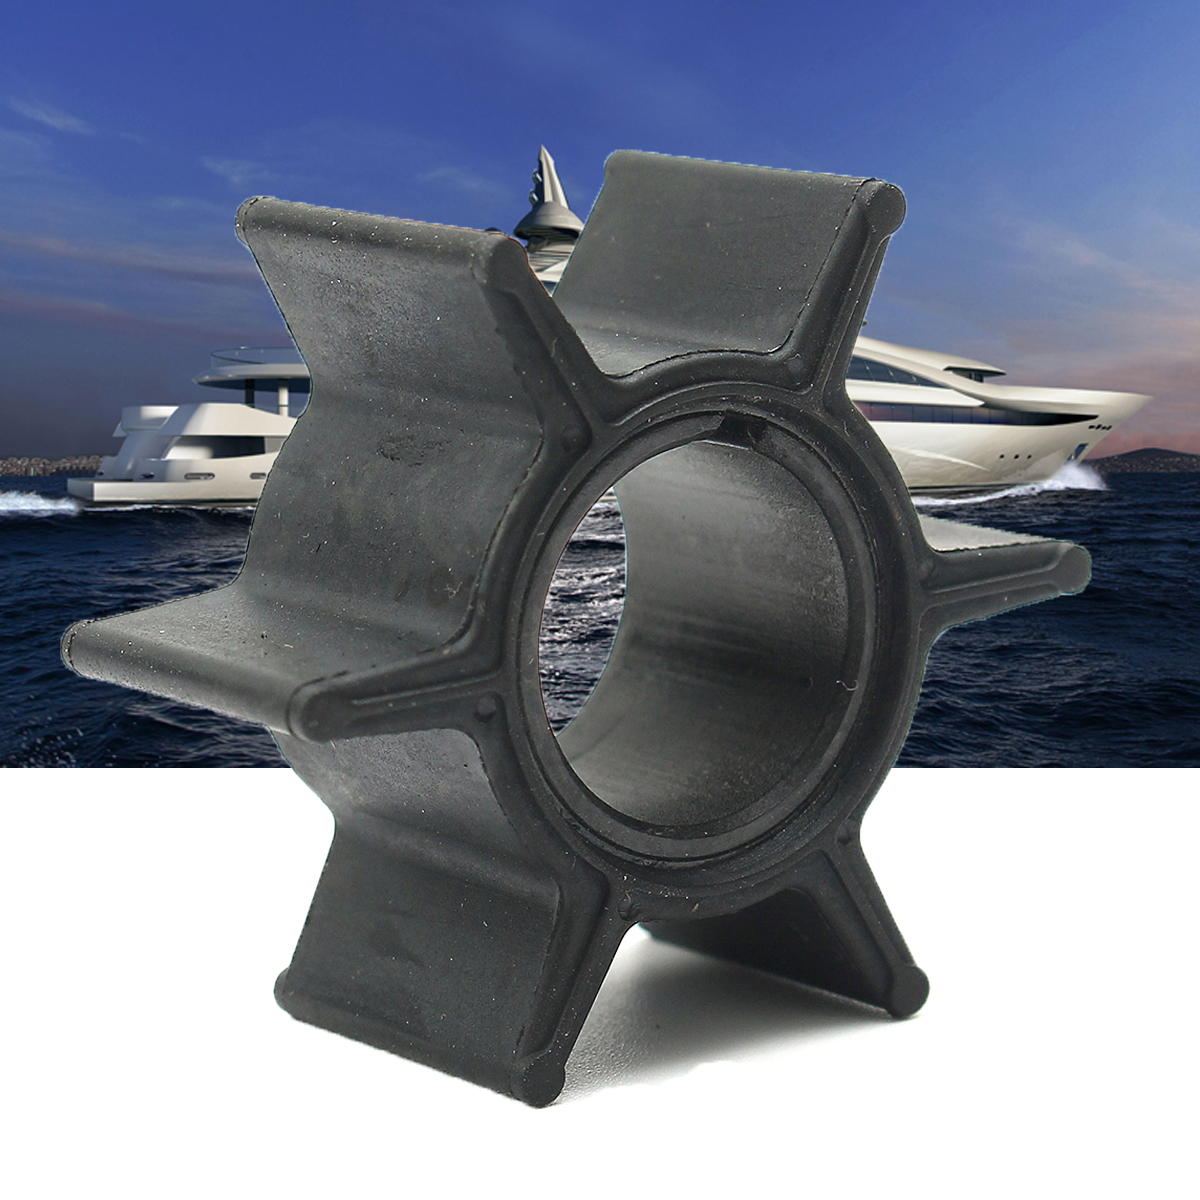 25/30/40HP Outboard Motor Water Pump Impeller For Tohatsu & For Mercury 345-65021-0 18-8923 Rubber Black Diameter 4.4cm 6 Blades